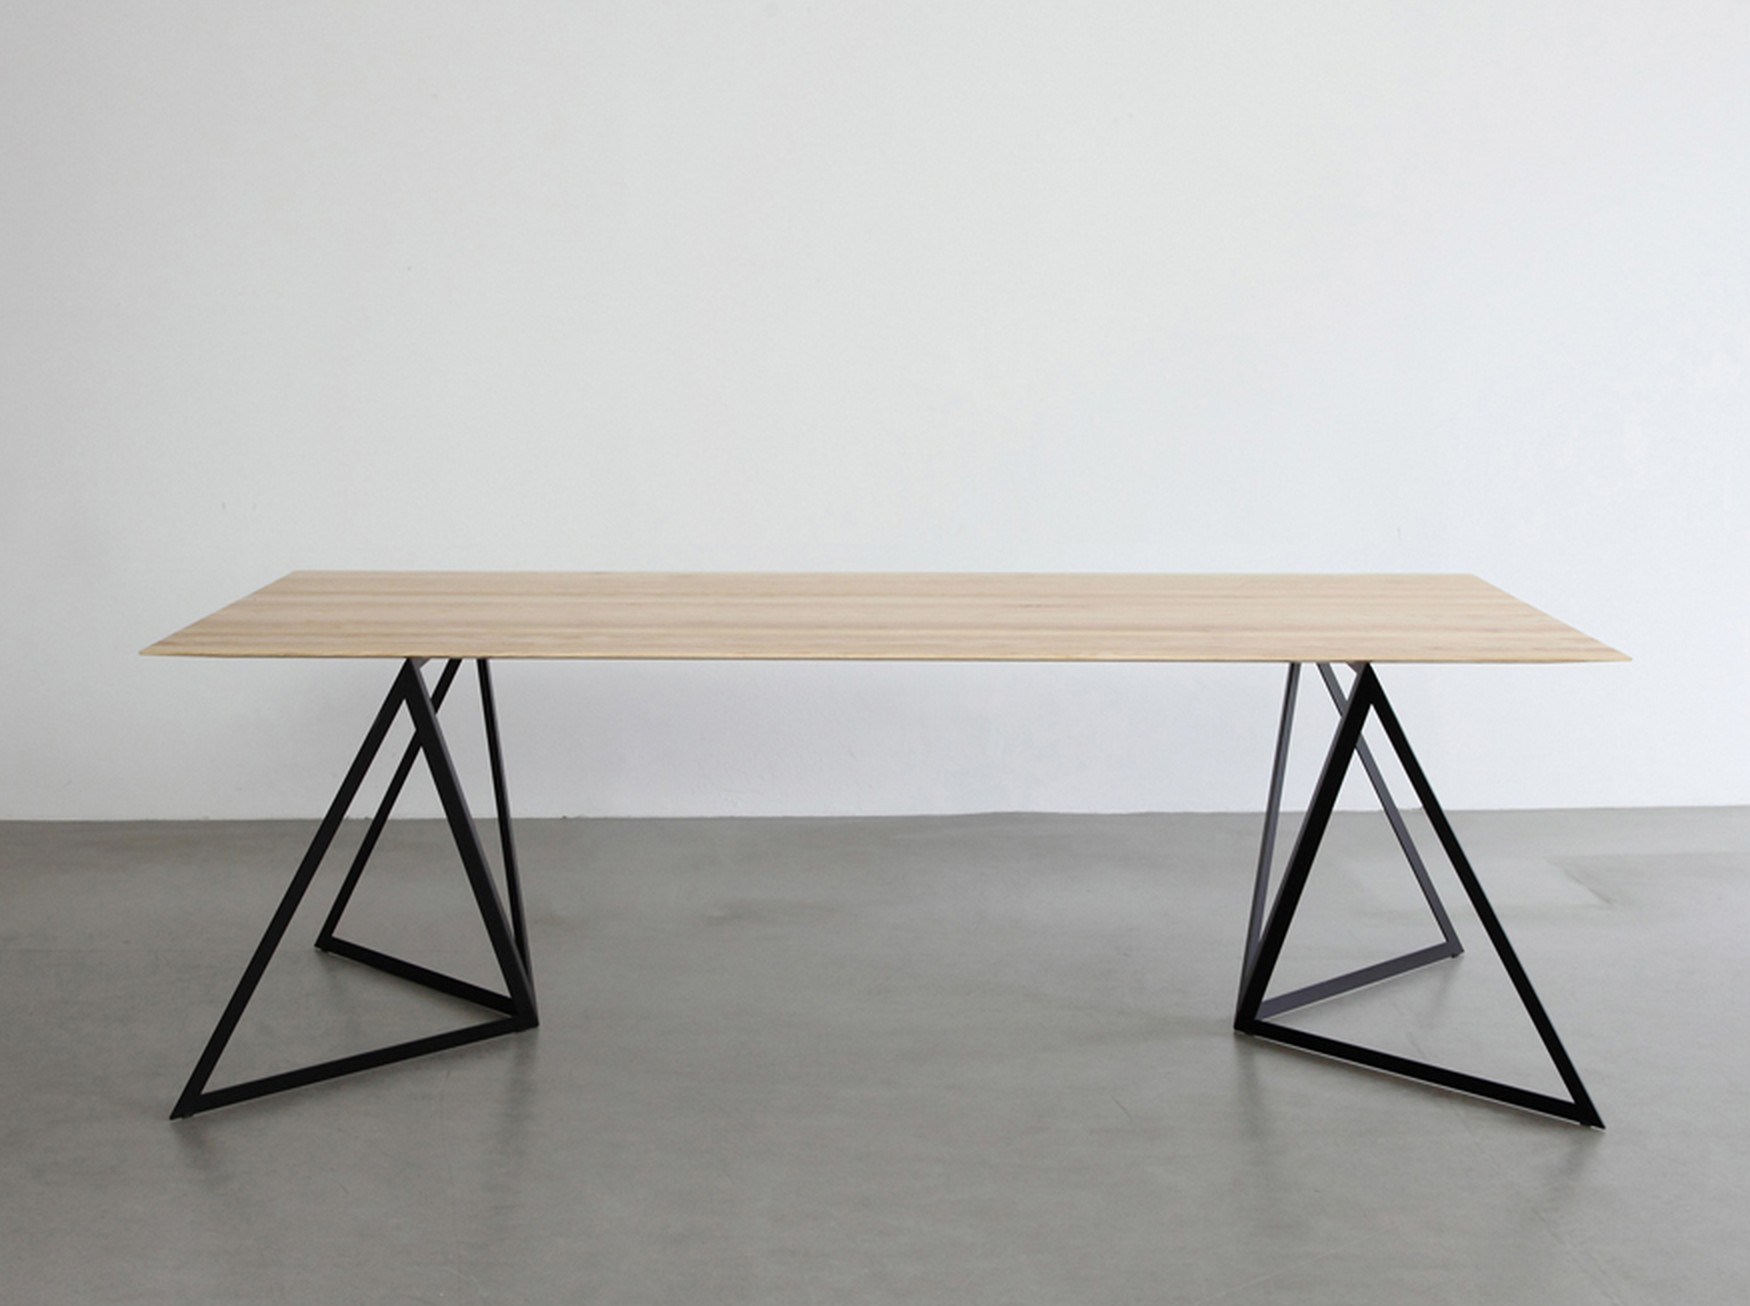 Pied table metal 2 blog d co design - Pied de table original ...